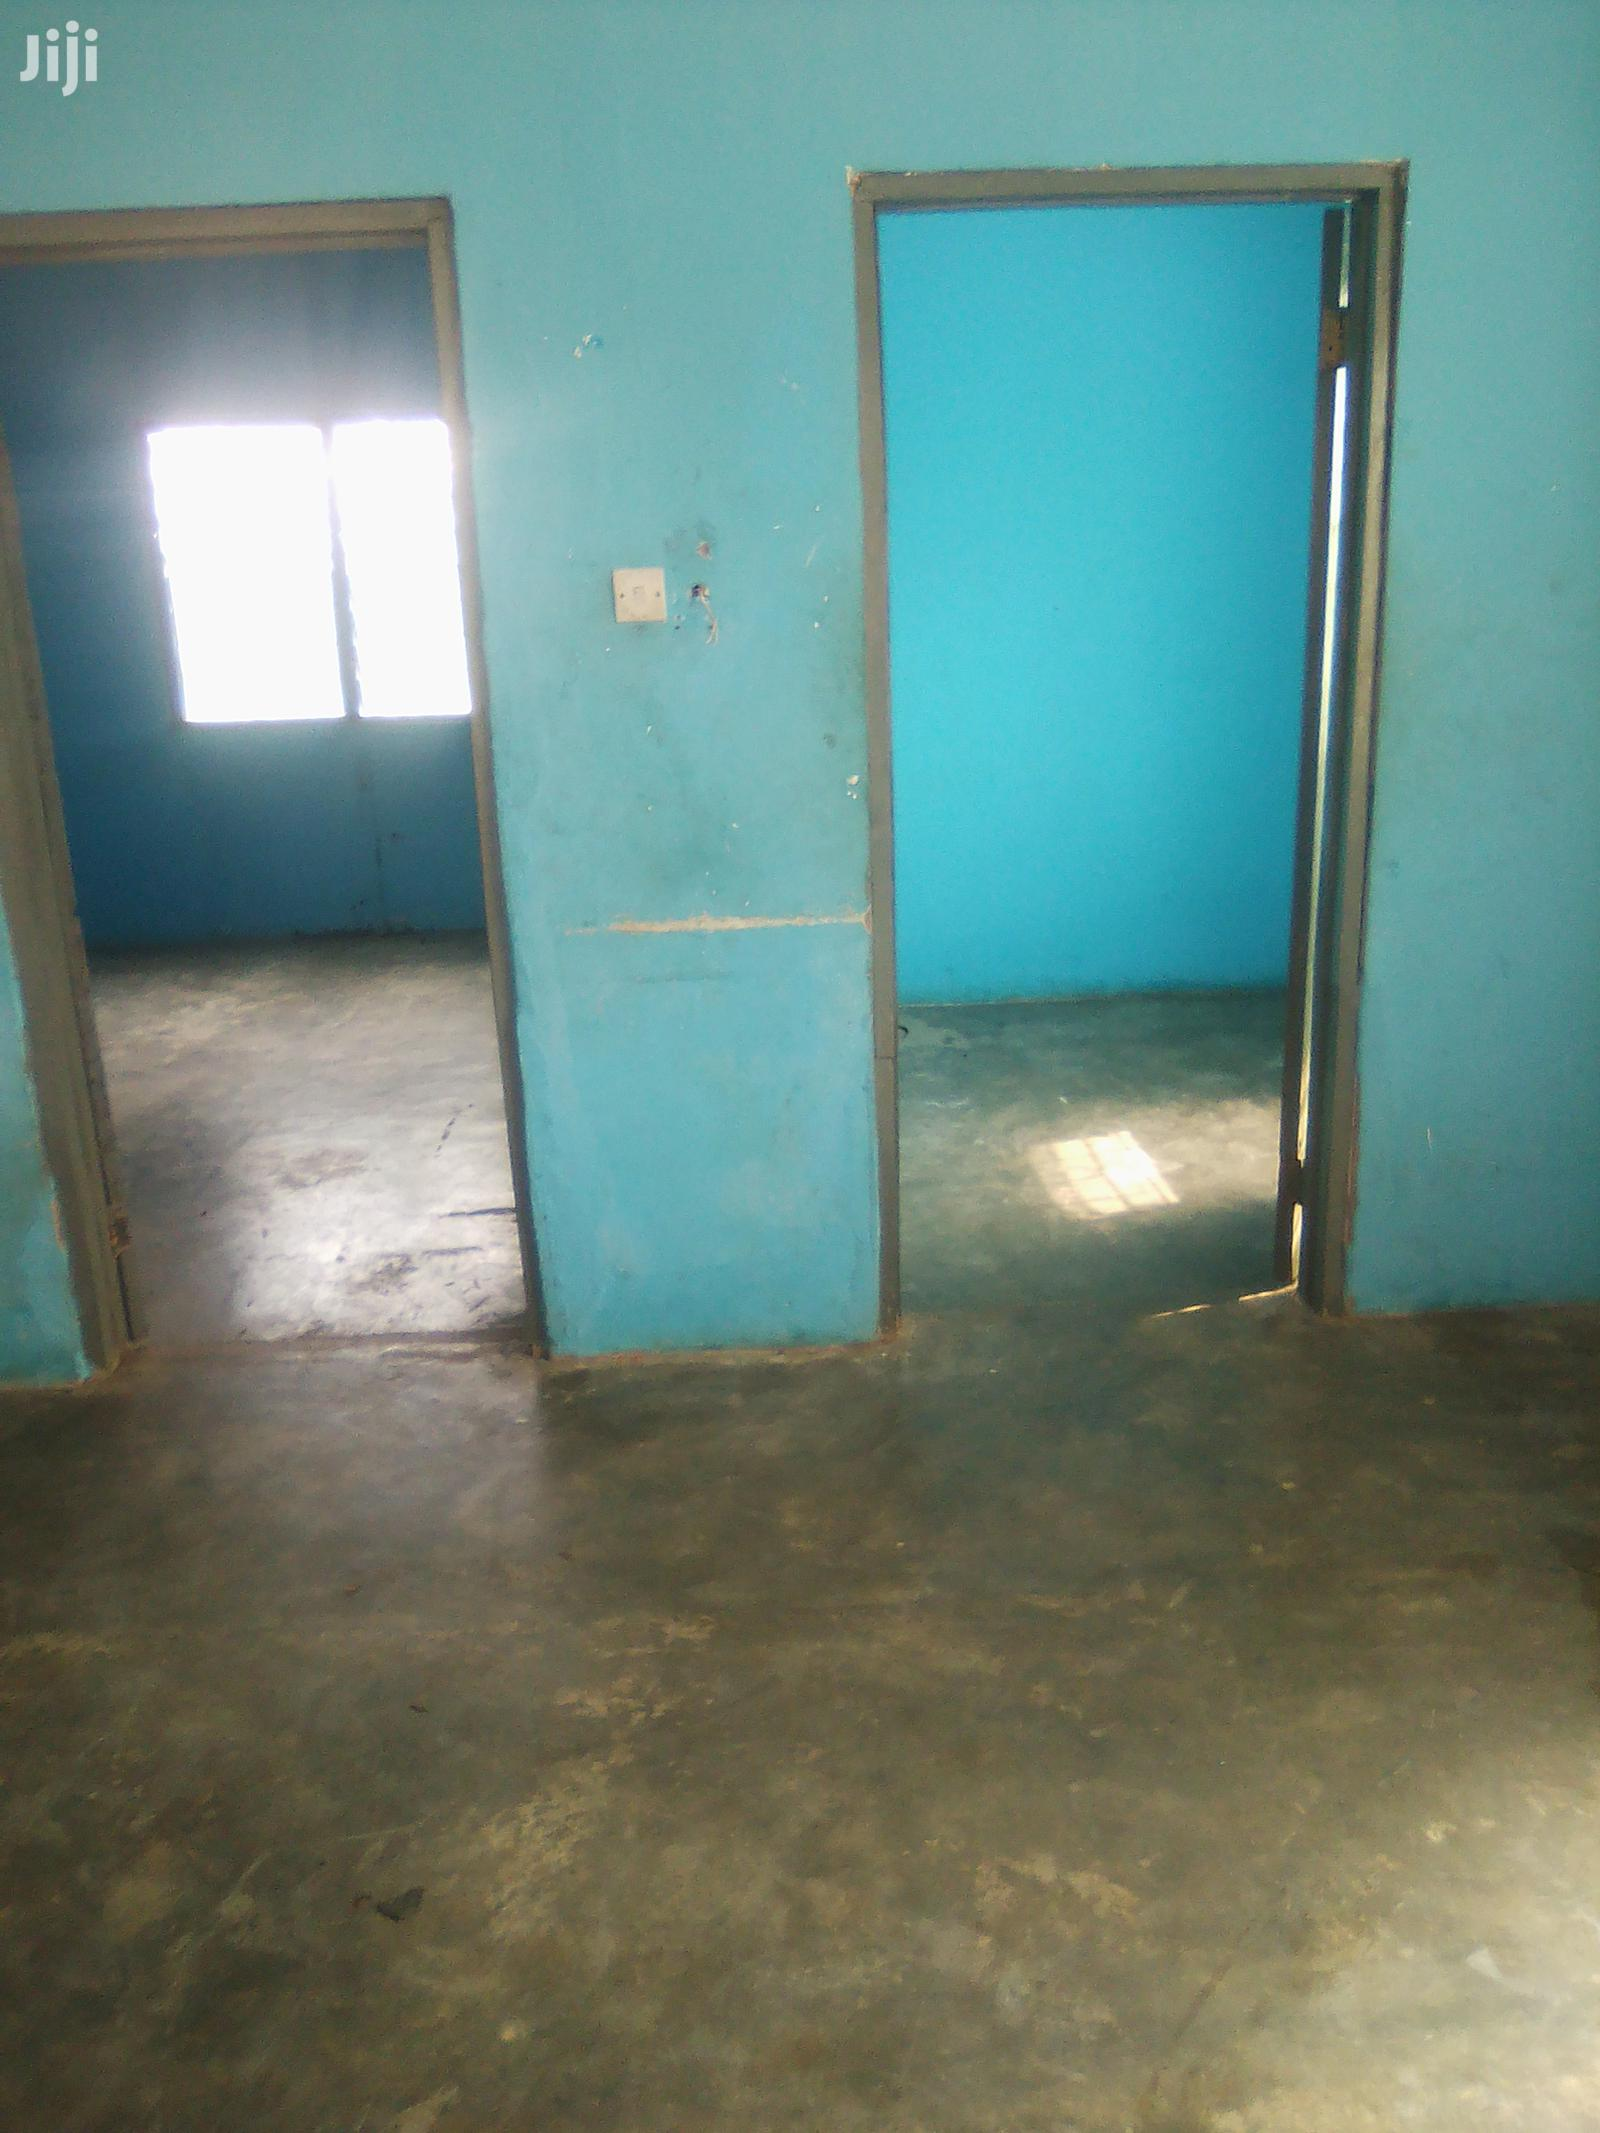 Chamber And Hall Self Contain At Pokuase Abensu For Rent   Houses & Apartments For Rent for sale in Ga West Municipal, Greater Accra, Ghana